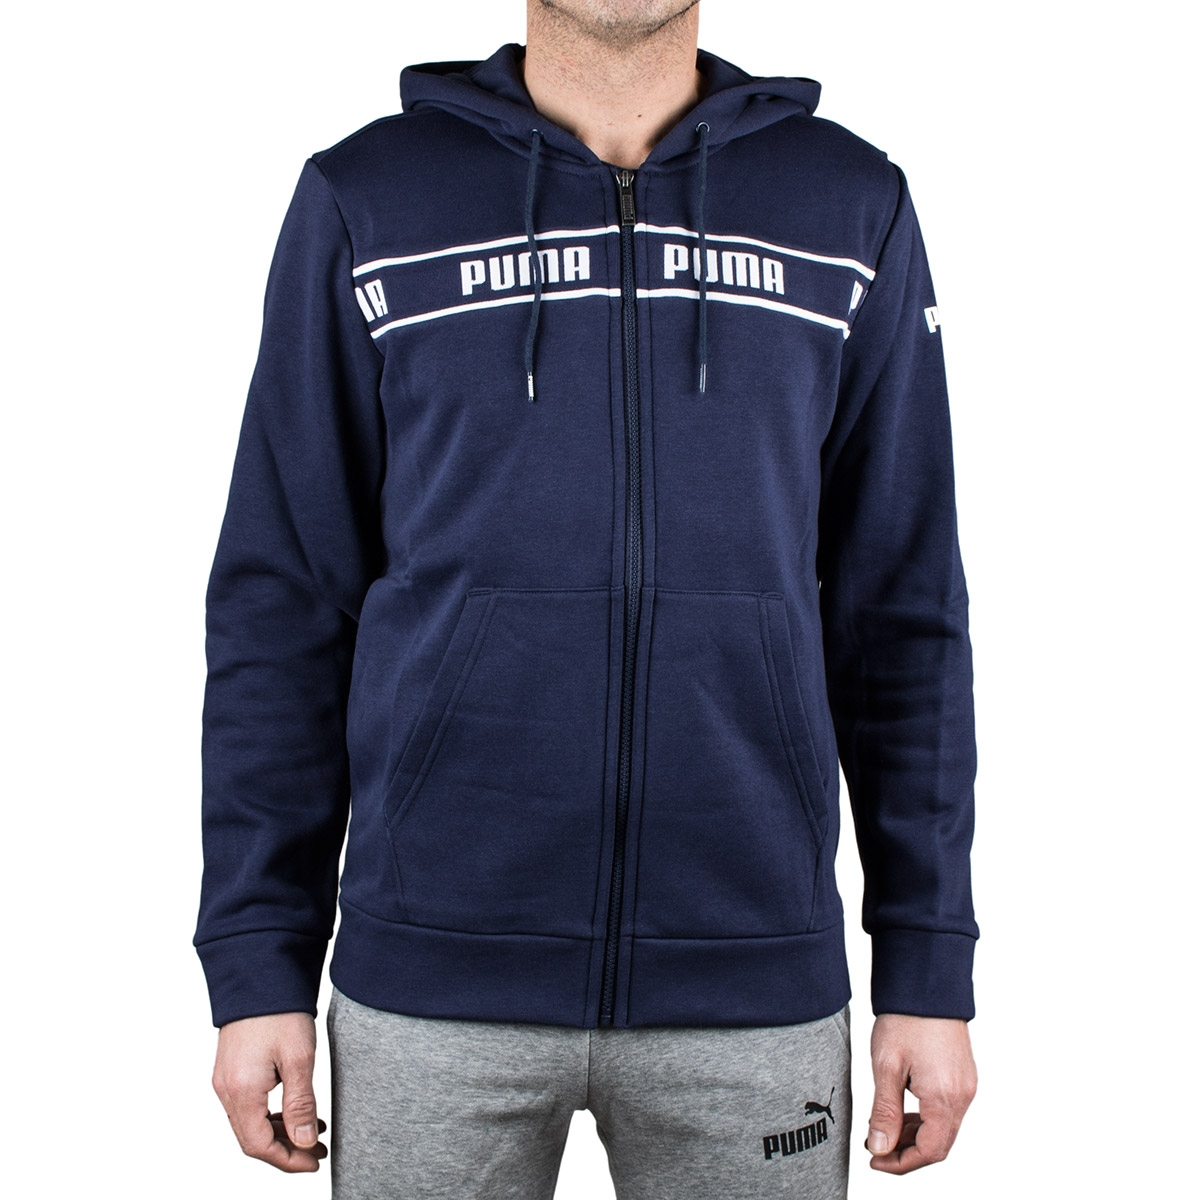 Puma Chaqueta con Capucha Amplified Hooded Jacket FL Puma Poacoat Hombre